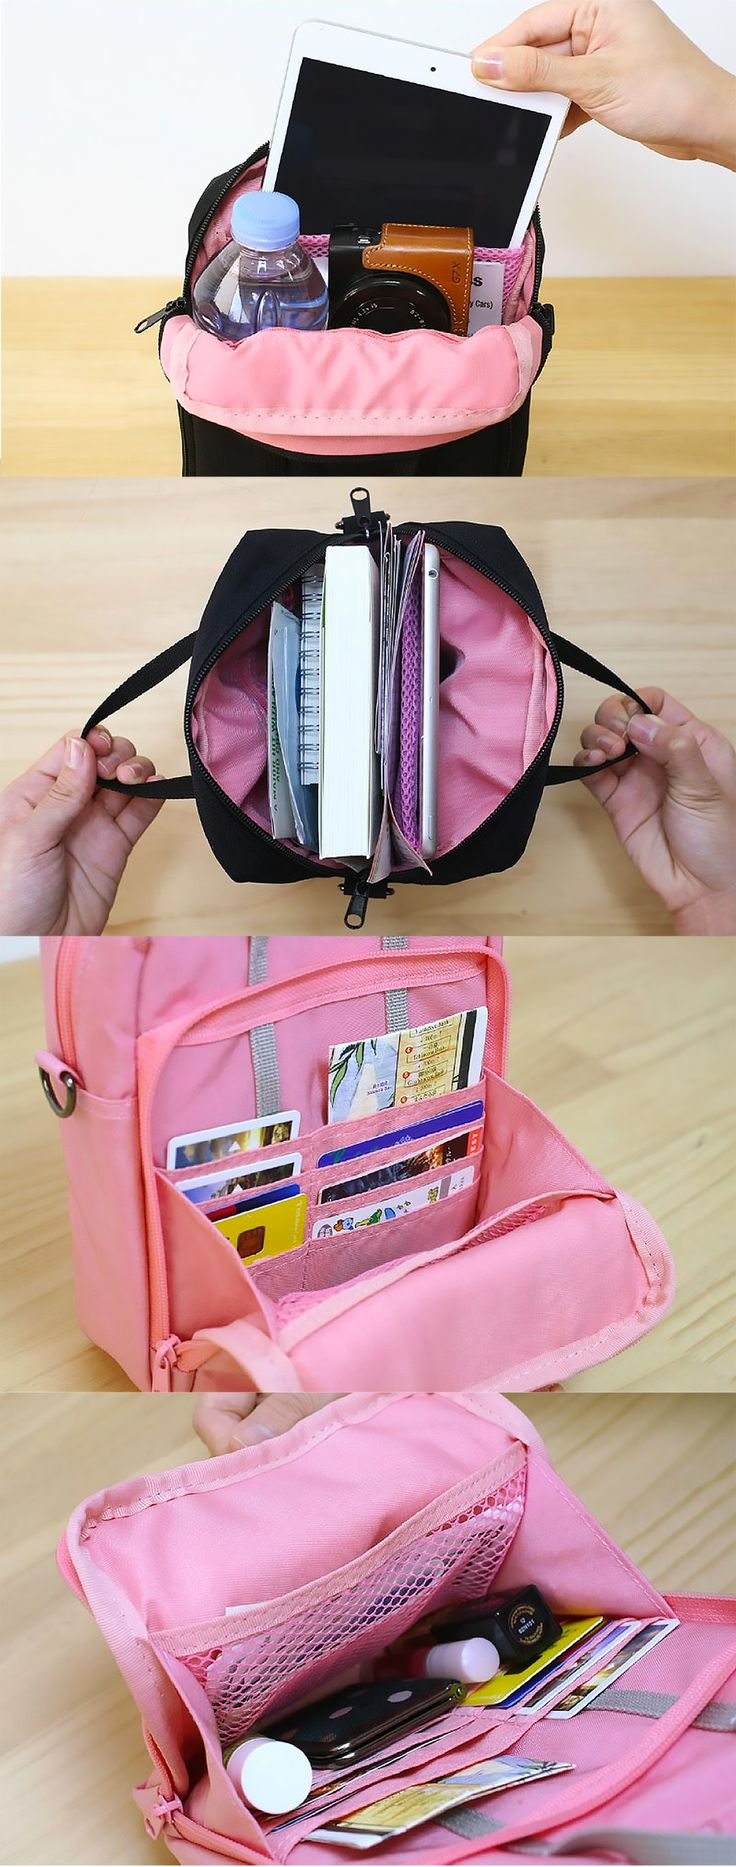 Wow! The next travel must-have is here! The Better Together Daily Bag is a spacious yet compact travel accessory. It's water resistant with handles and a detachable strap. Wear it on your shoulder or as a crossbody bag! With the endless pockets and compartments, there's plenty of space for your cards, cash, passport, iPad mini, makeup, maps, souvenirs, and more! Stylish and cute, it's the perfect travel-sized carry-all for your trips and adventures, so check it out!